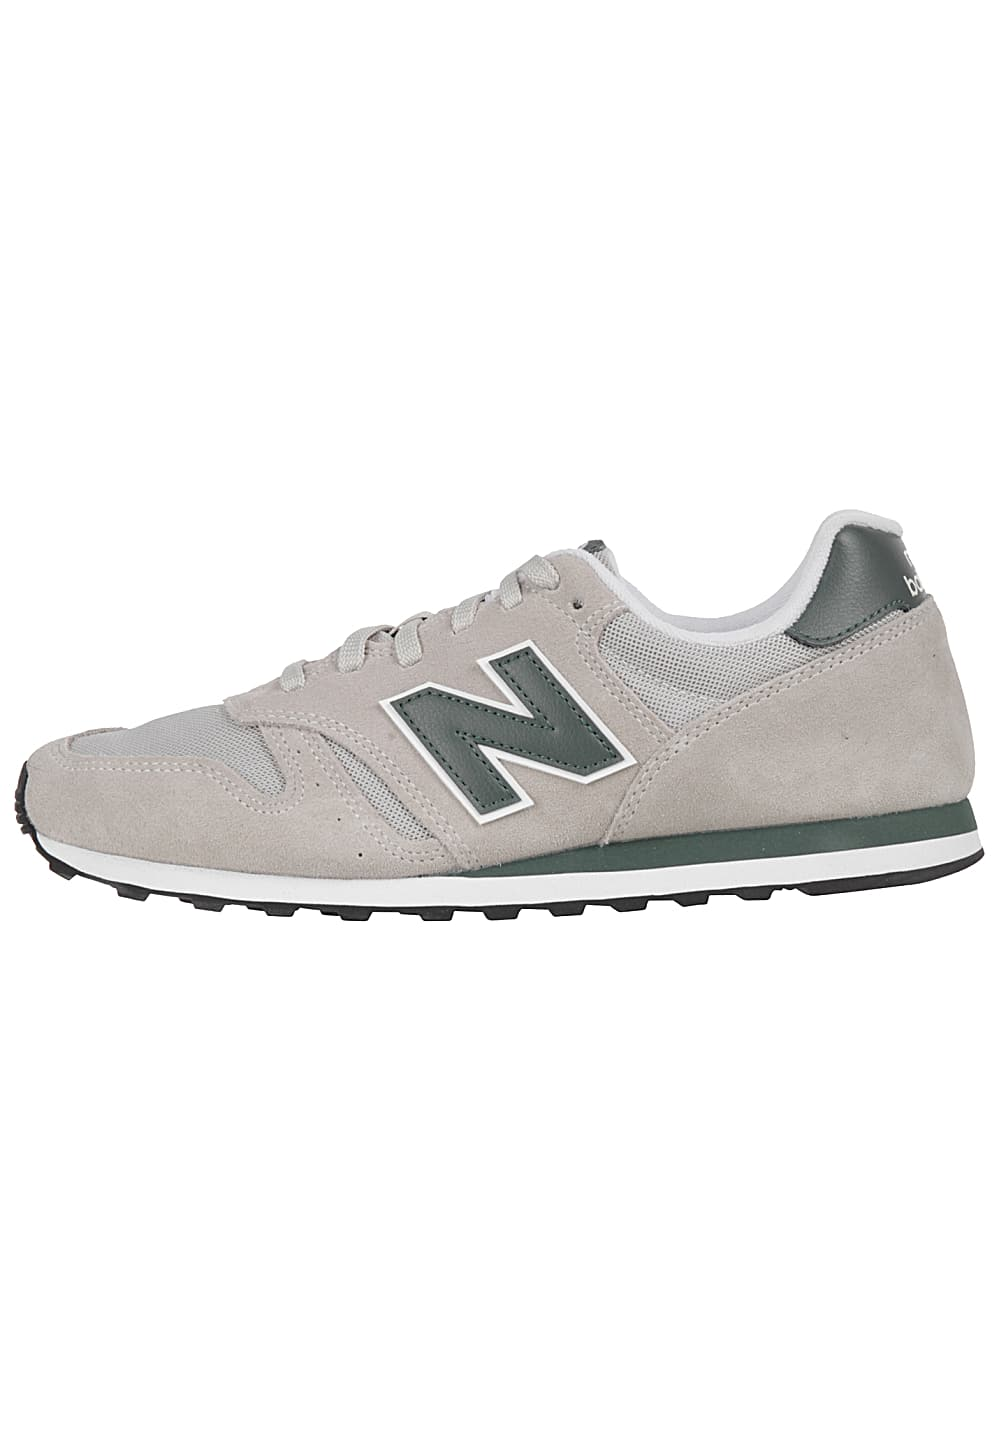 eaef3eeb467be NEW BALANCE ML373 D - Sneakers for Men - Beige - Planet Sports